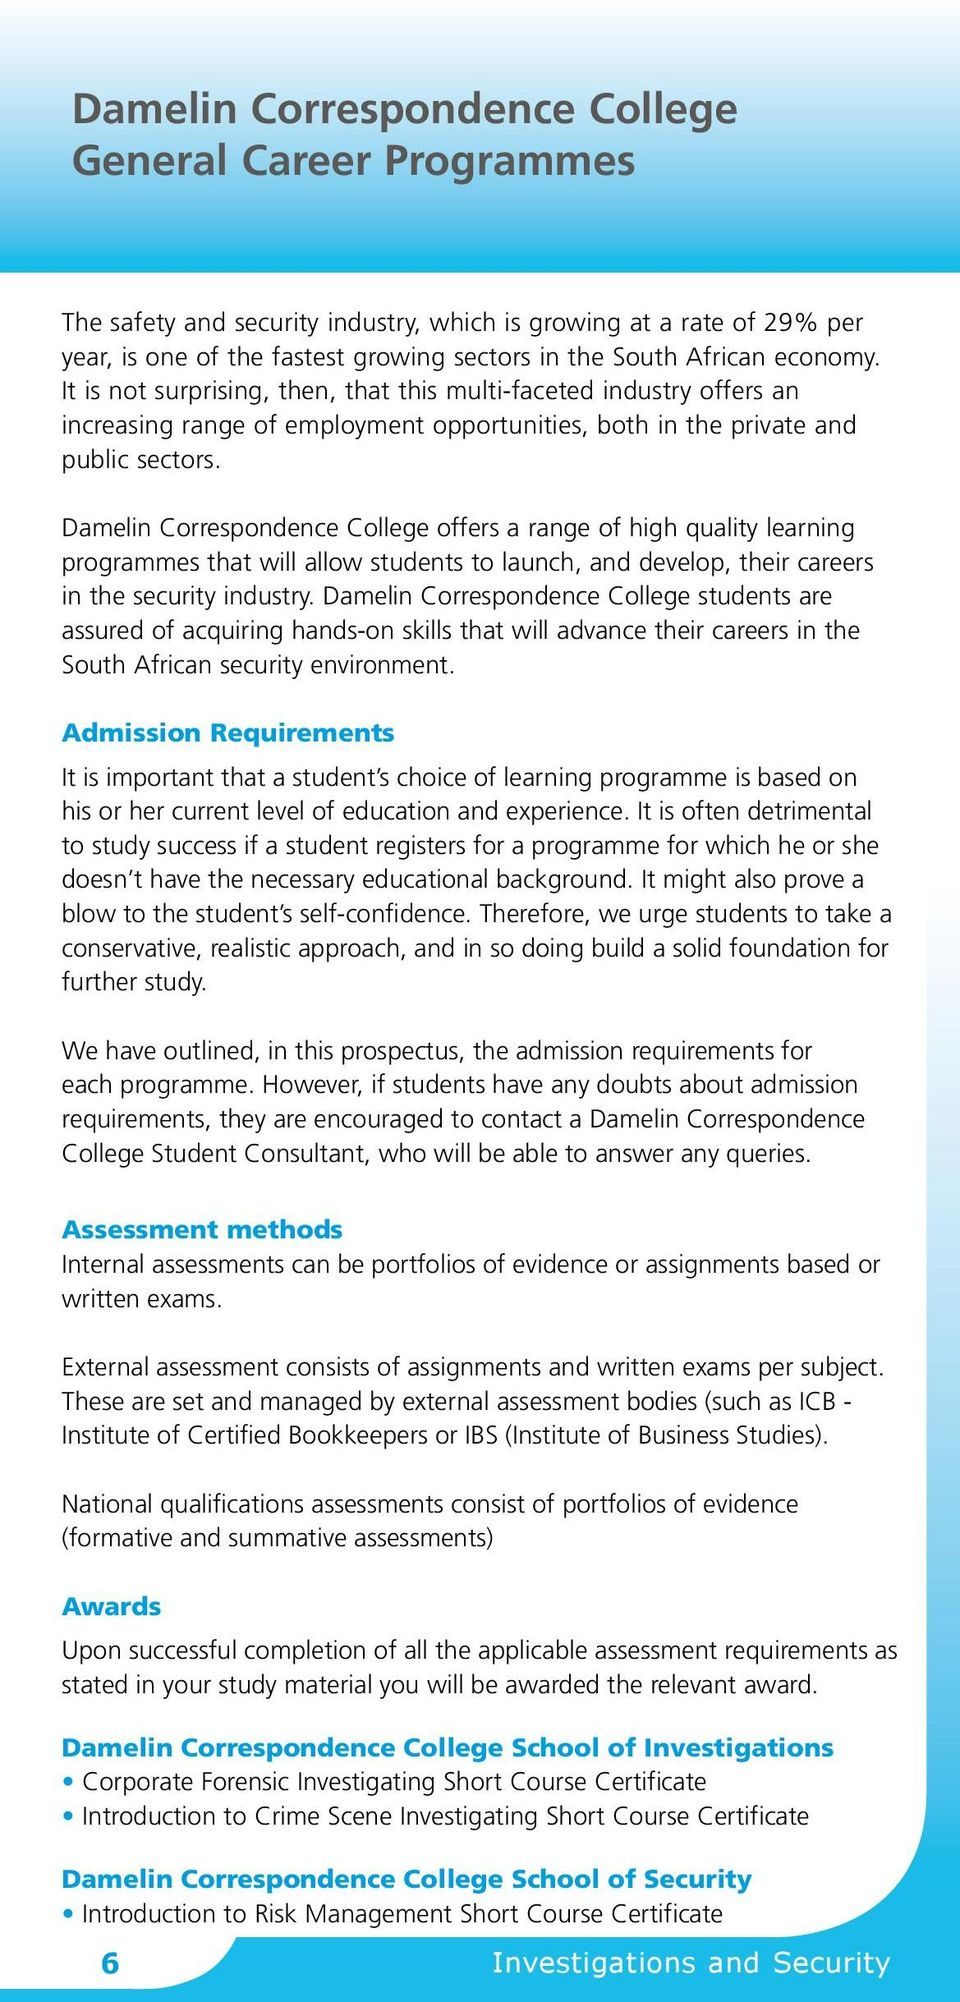 Damelin Correspondence College offers a range of high quality learning programmes that will allow students to launch, and develop, their careers in the security industry.